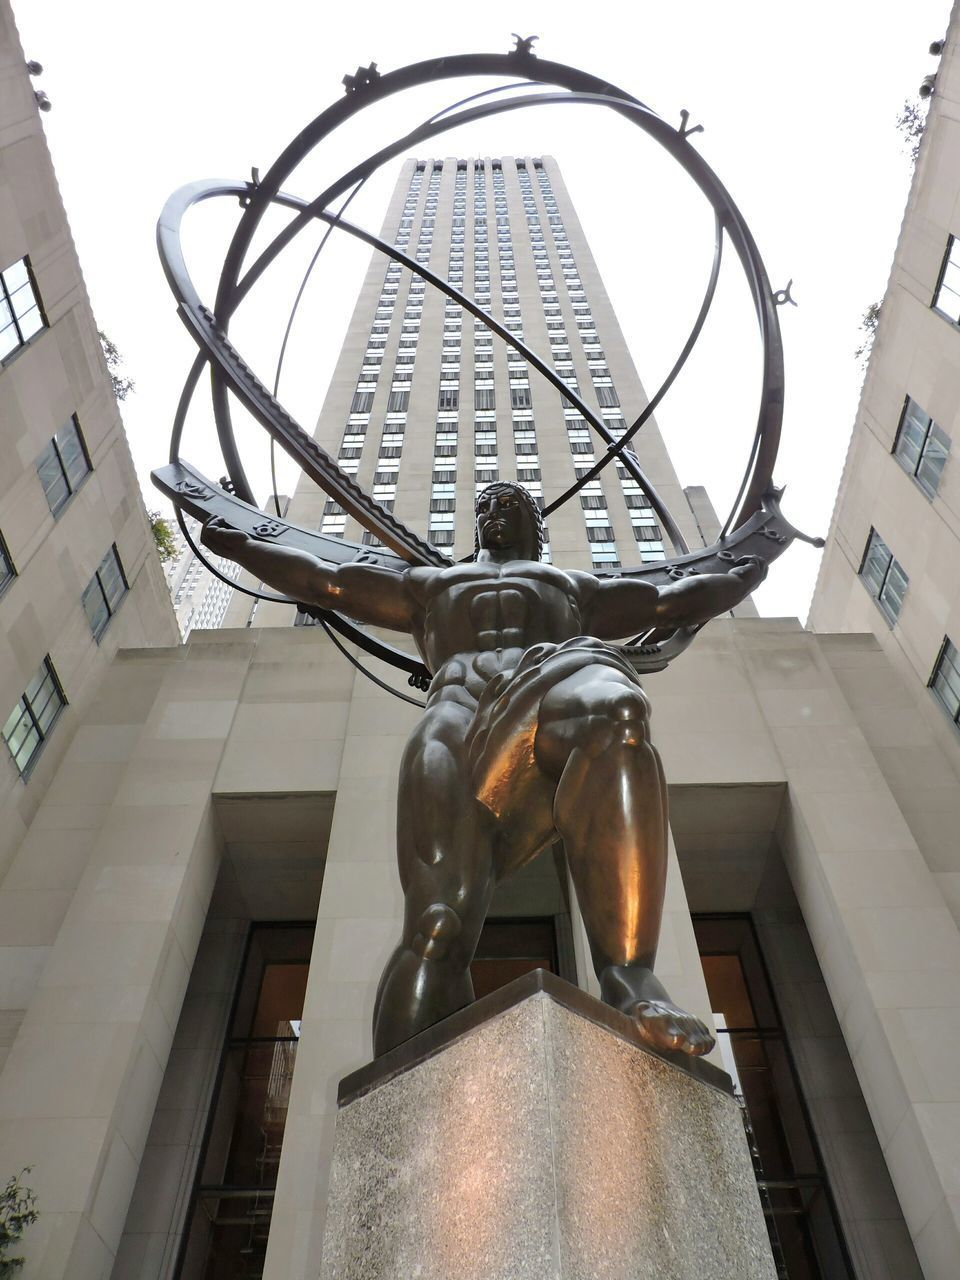 LOW ANGLE VIEW OF SCULPTURE ON BUILDING AGAINST SKY